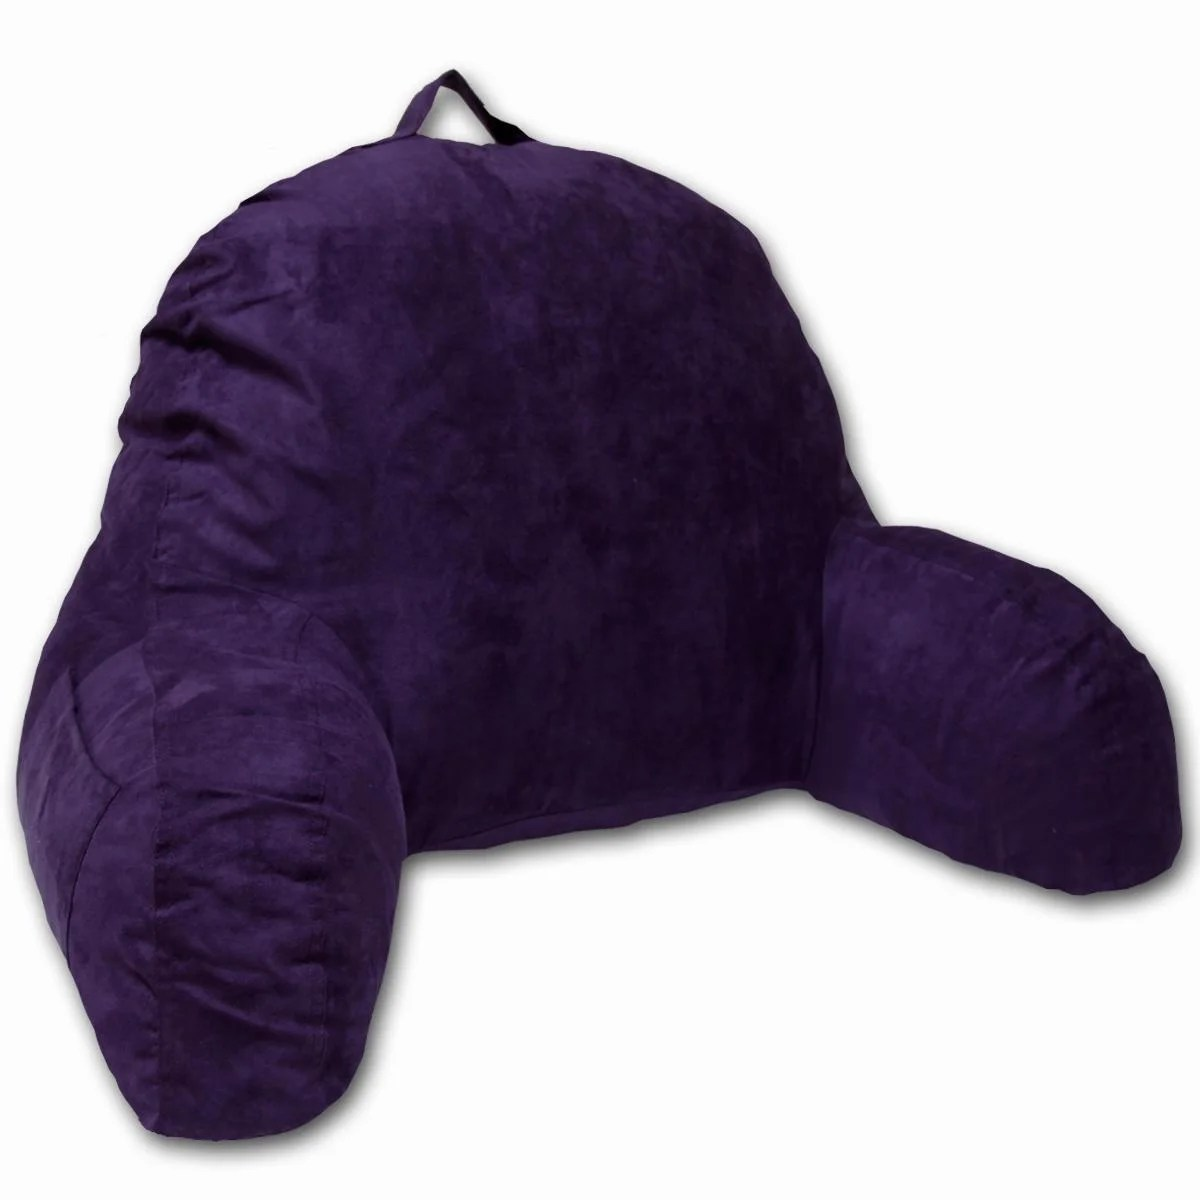 Shop Purple Microsuede Bed Rest Free Shipping On Orders